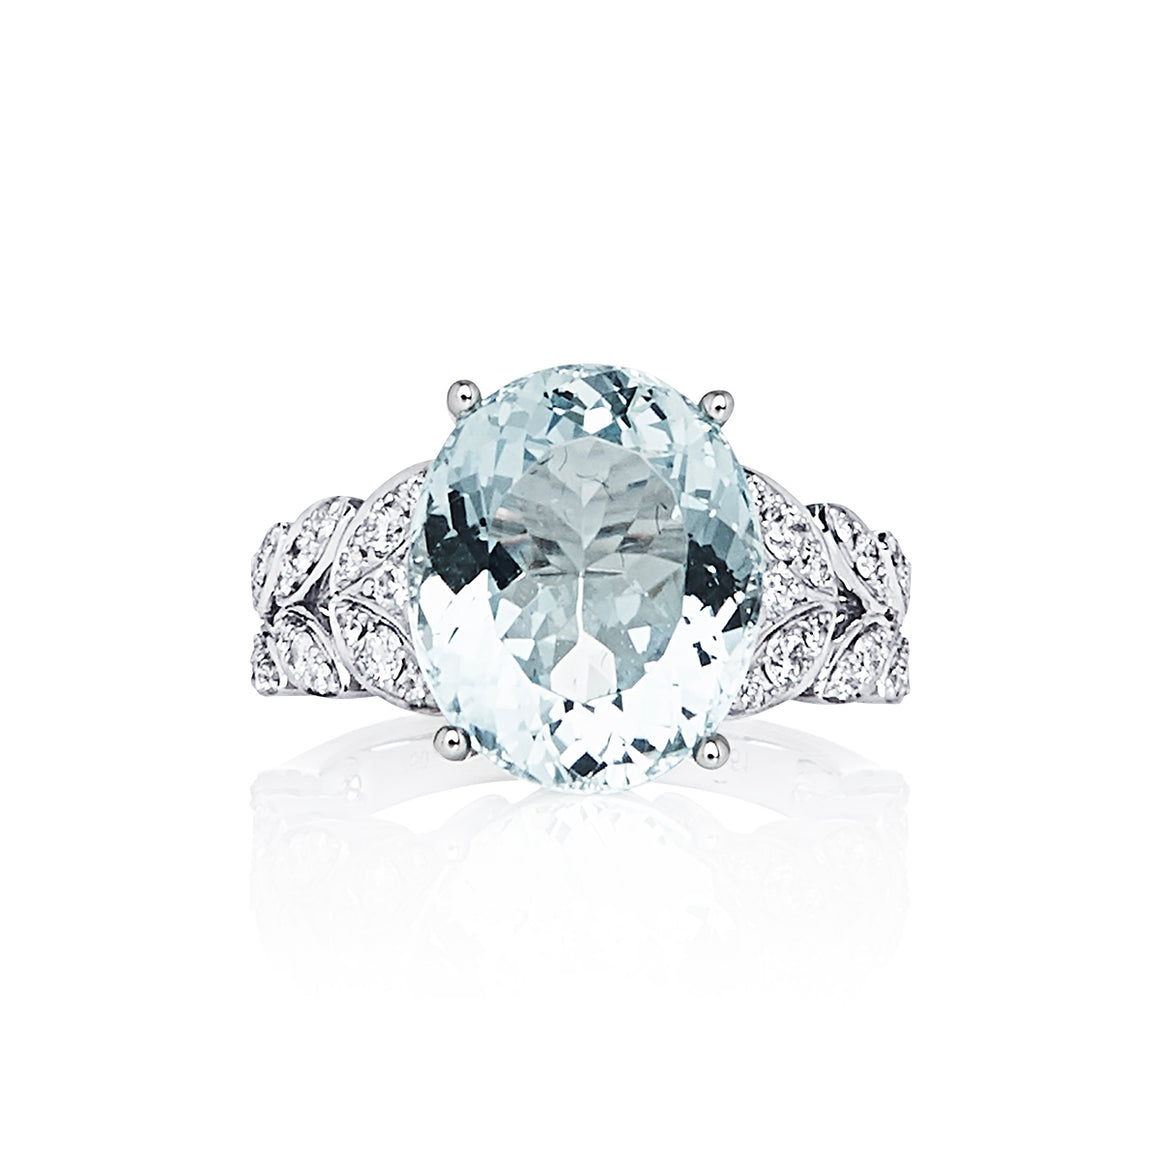 "Aquamarine & Diamond ""Hilary"" Ring - Gemma Stone  ABN:51 621 127 866"